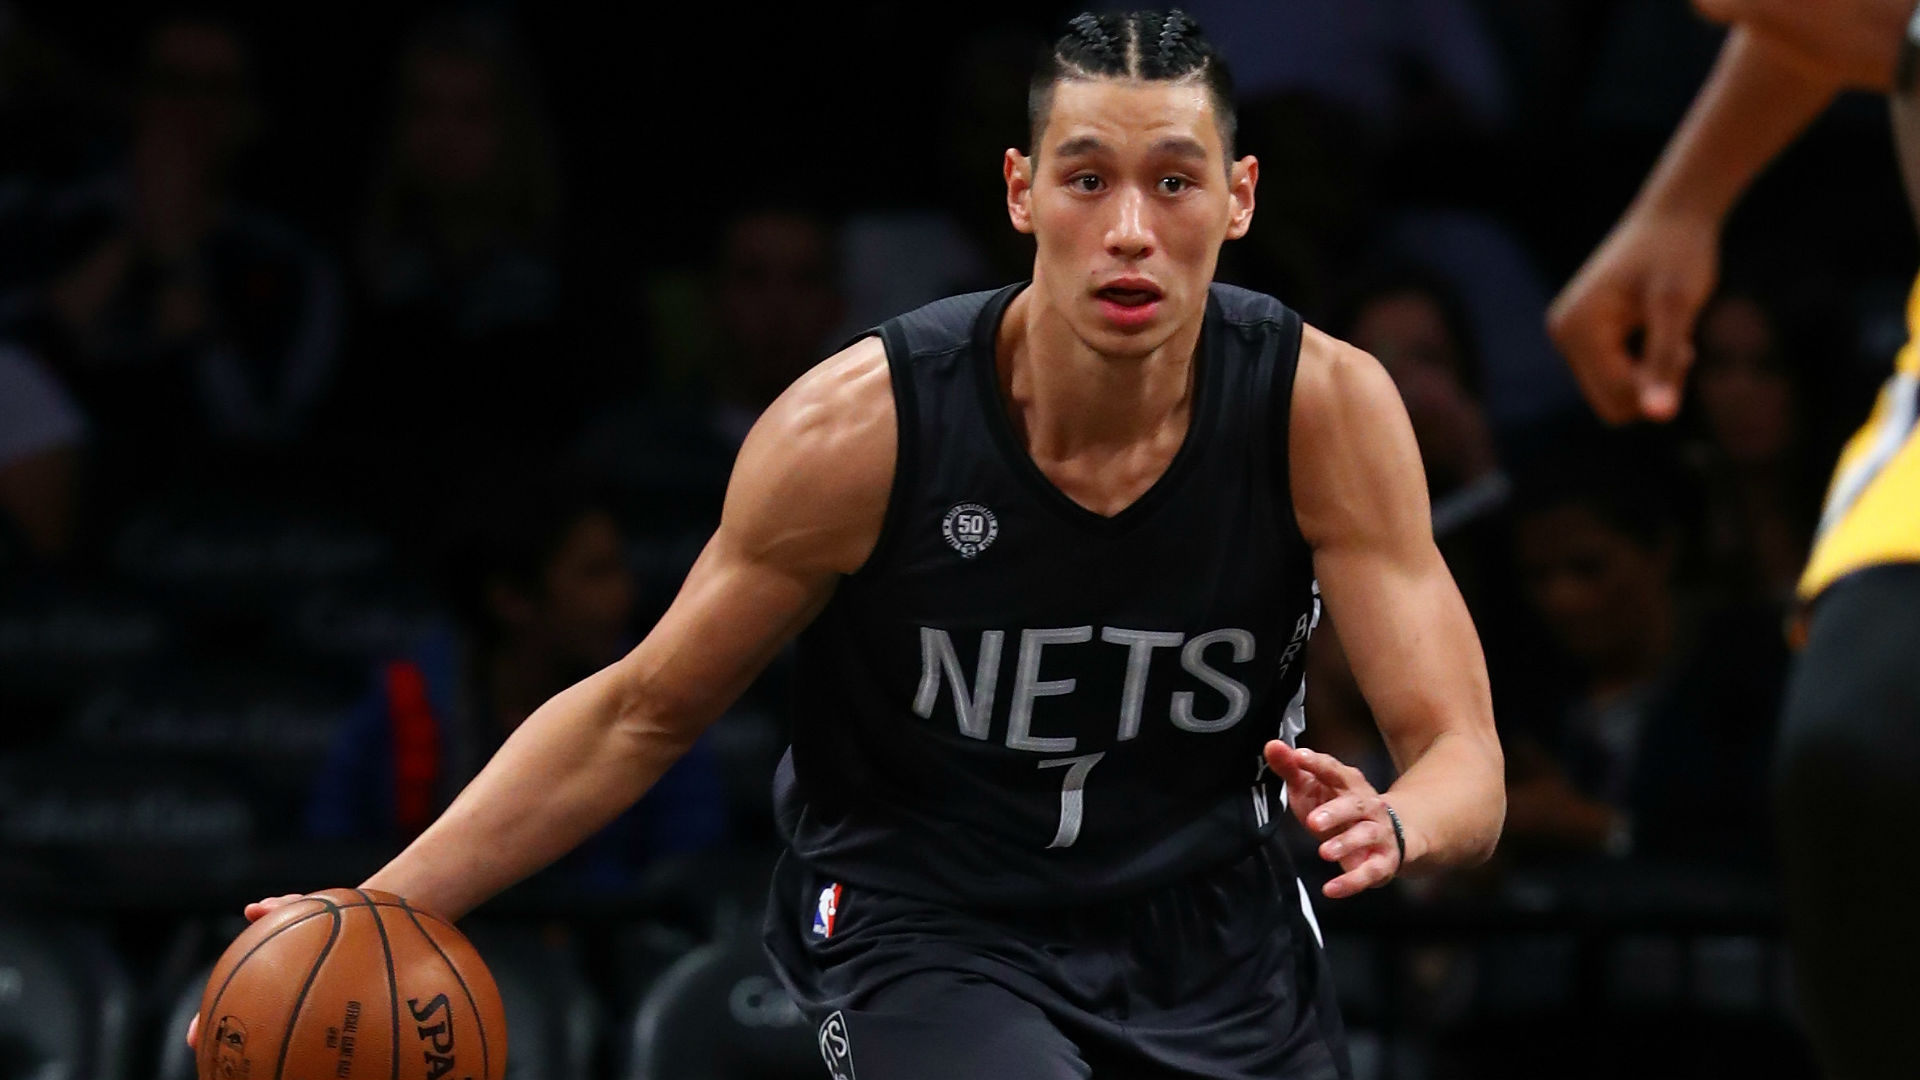 Jeremy Lin fires back at Jalen Rose's comment about Nets